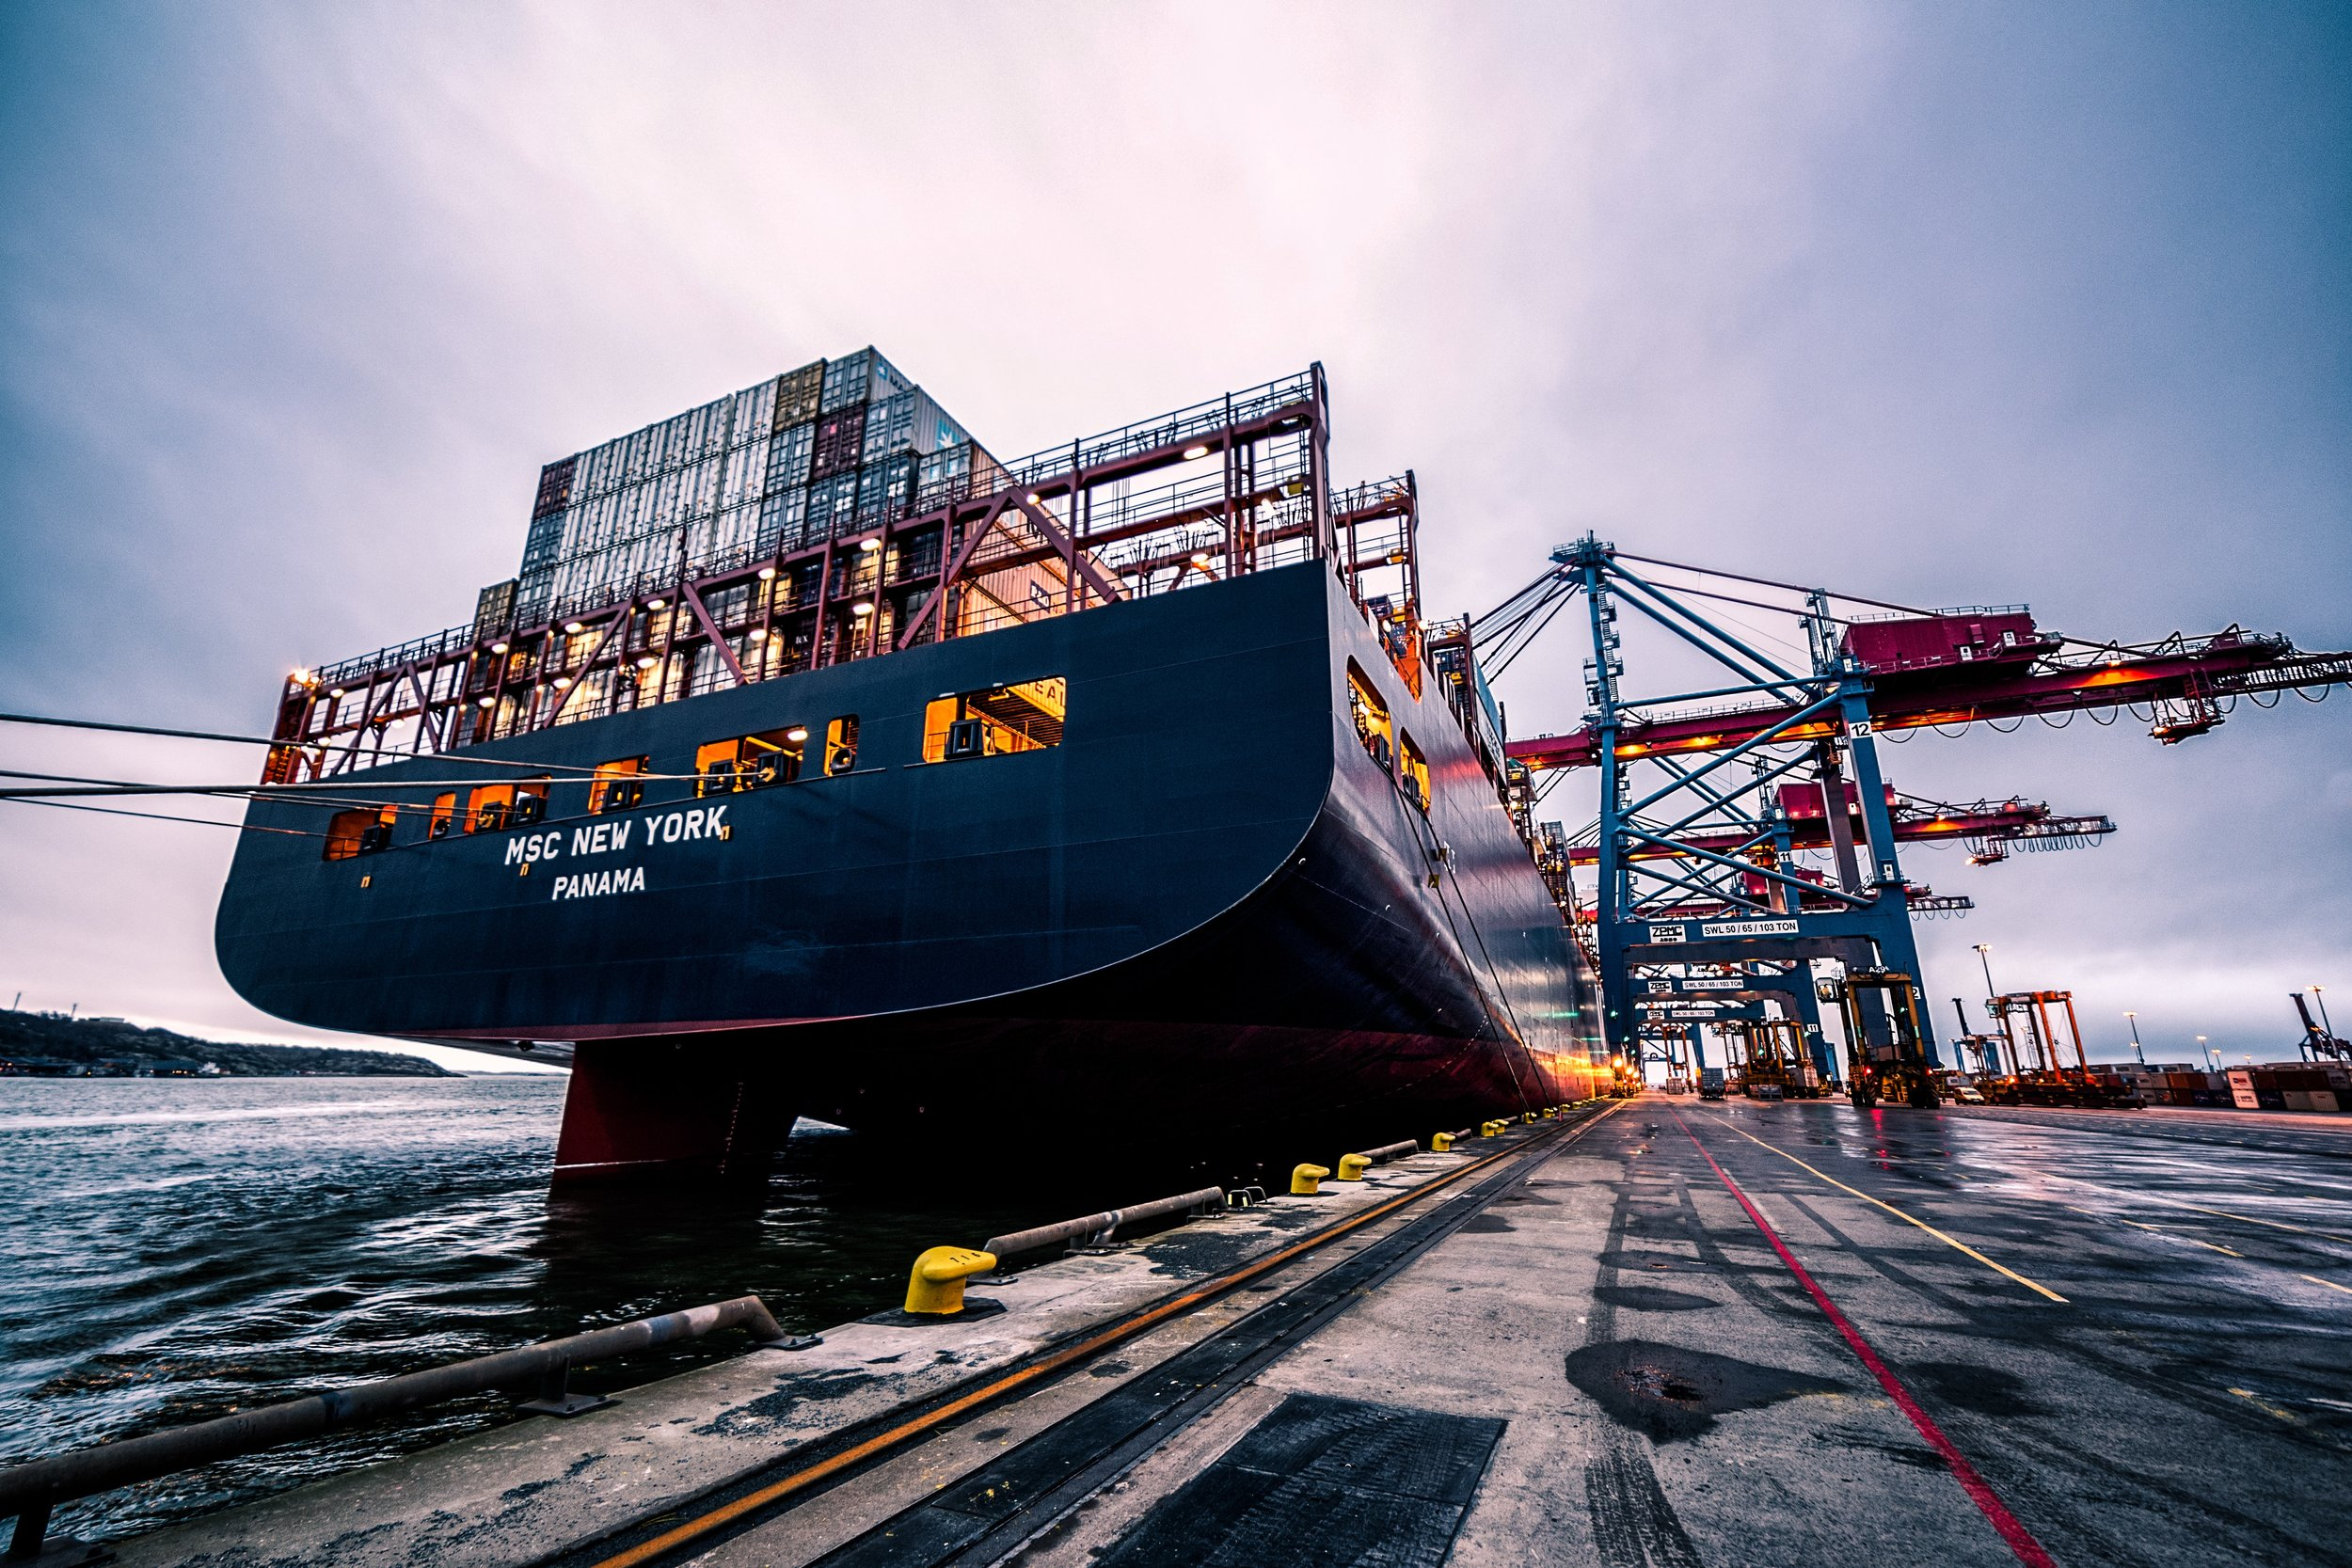 cargo-cargo-containers-containers-906982.jpg